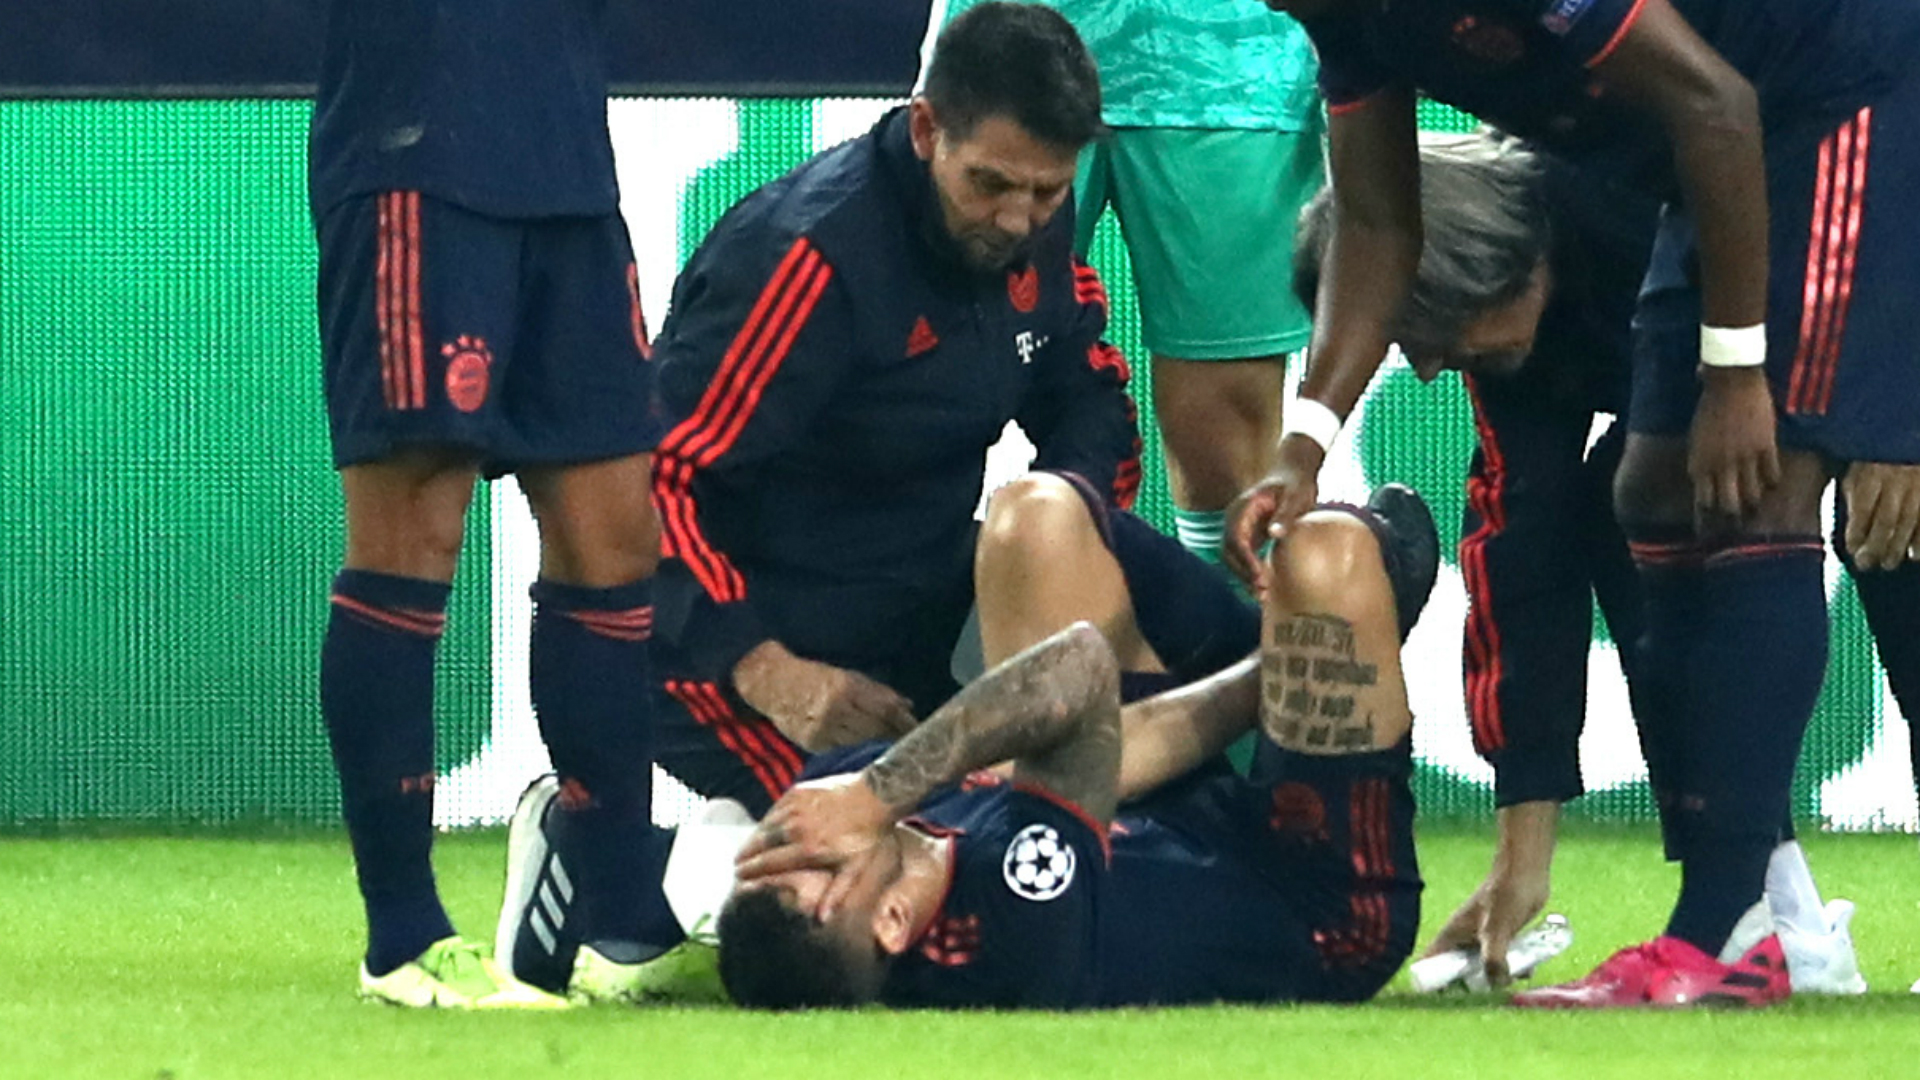 Hasan Salihamidzic and Niko Kovac addressed Lucas Hernandez's injury sustained in a 3-2 win at Olympiacos.